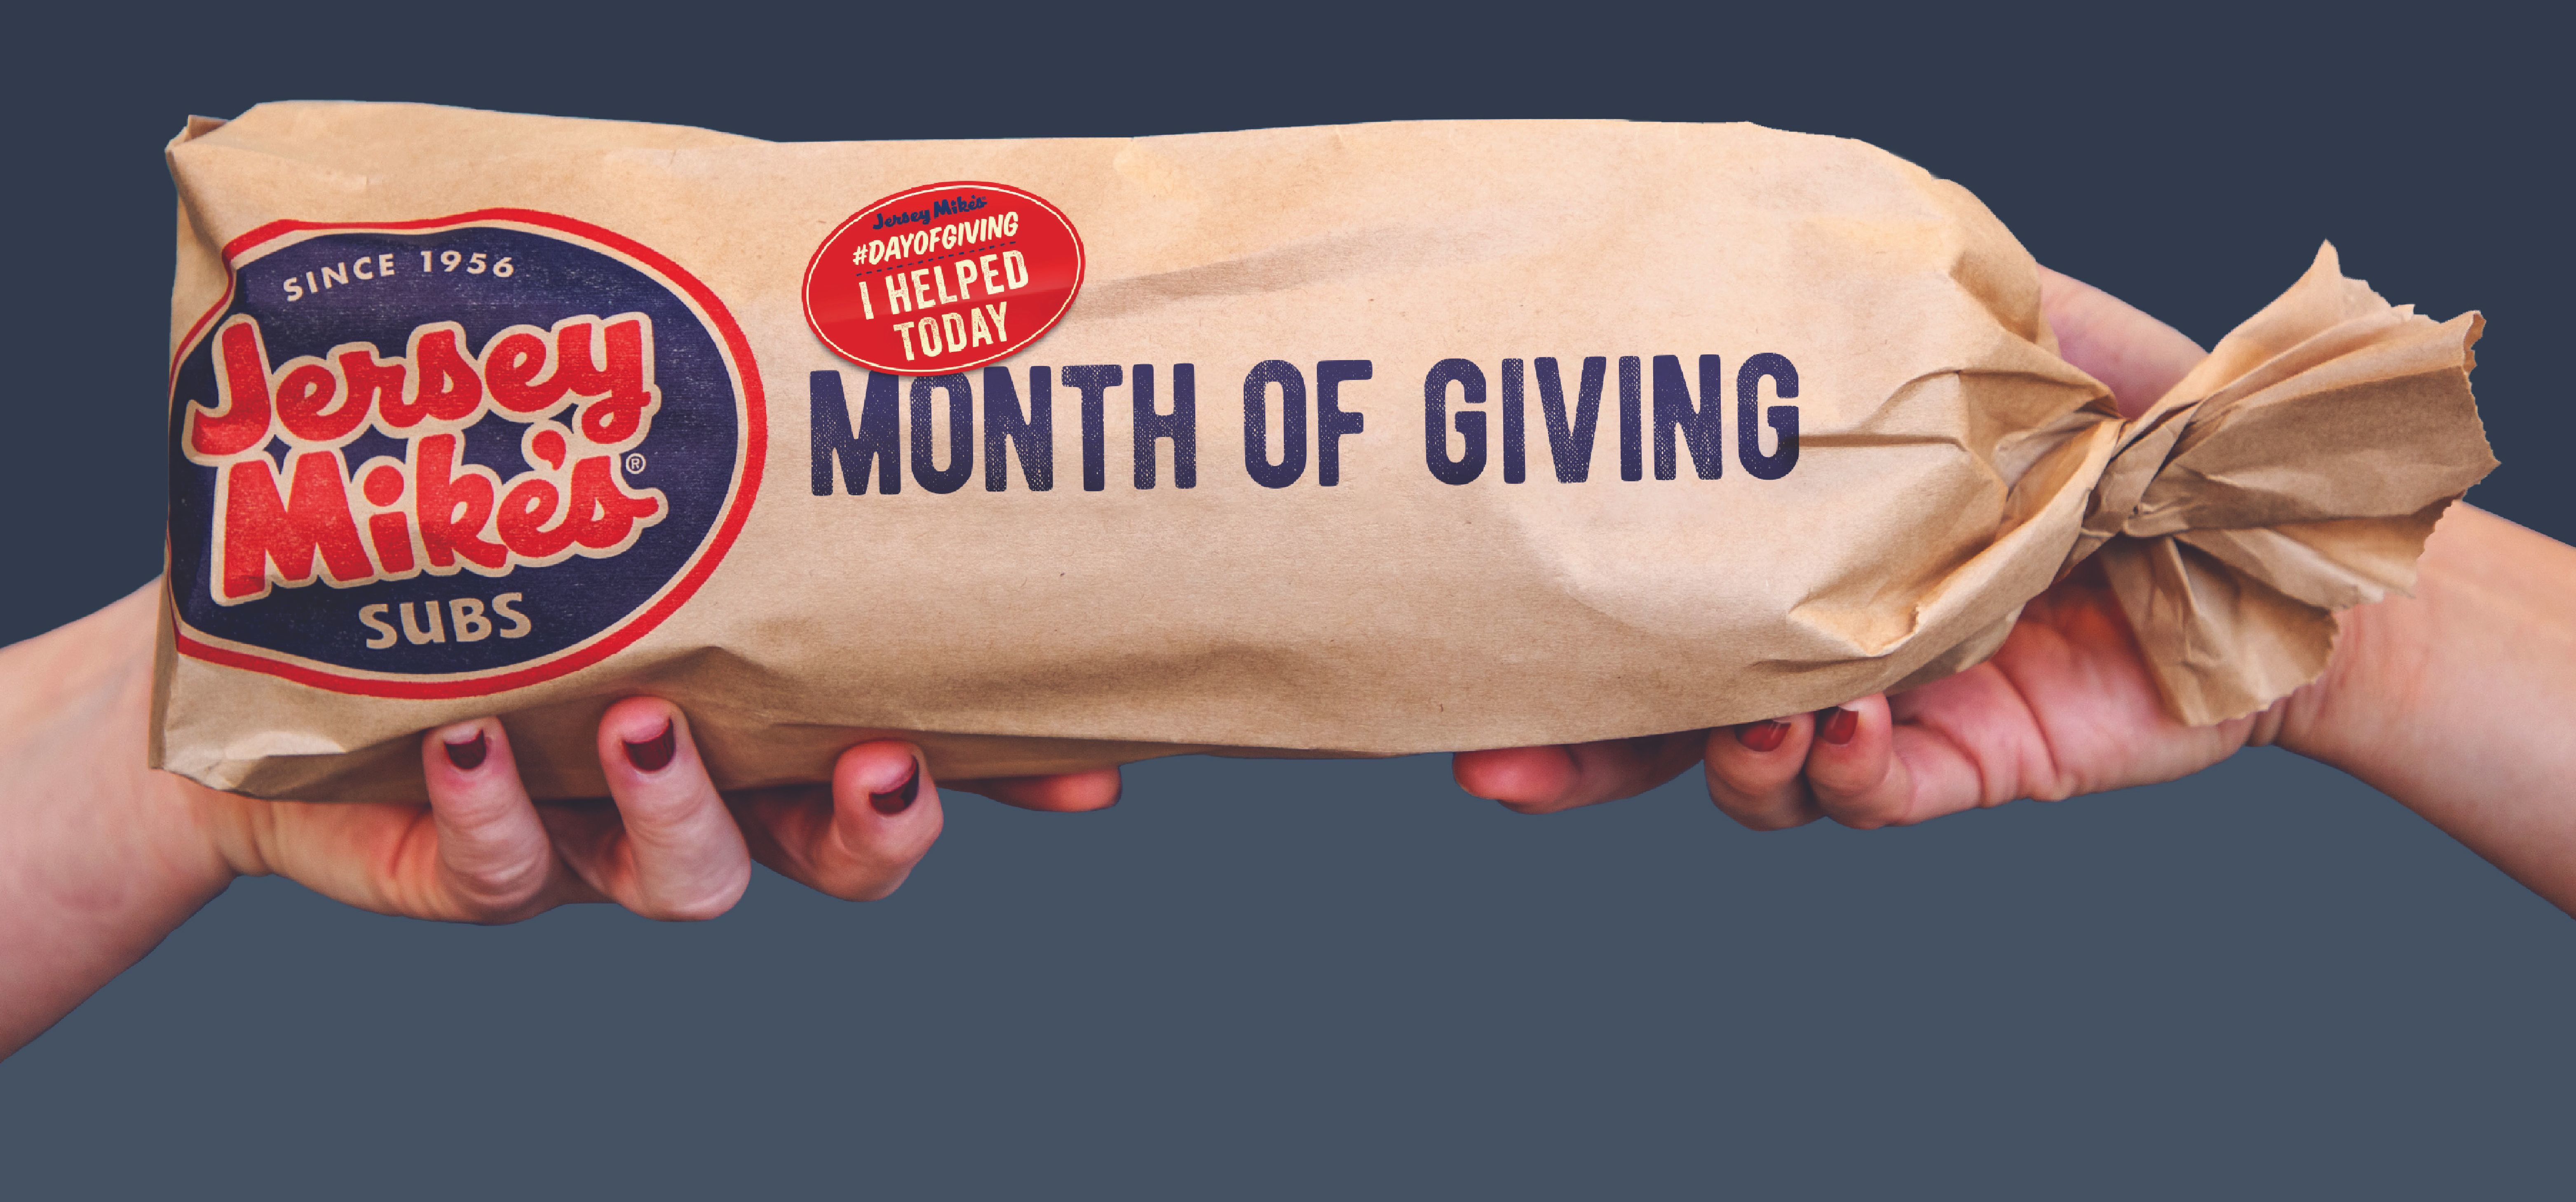 Eat a Sub. Make a Difference.